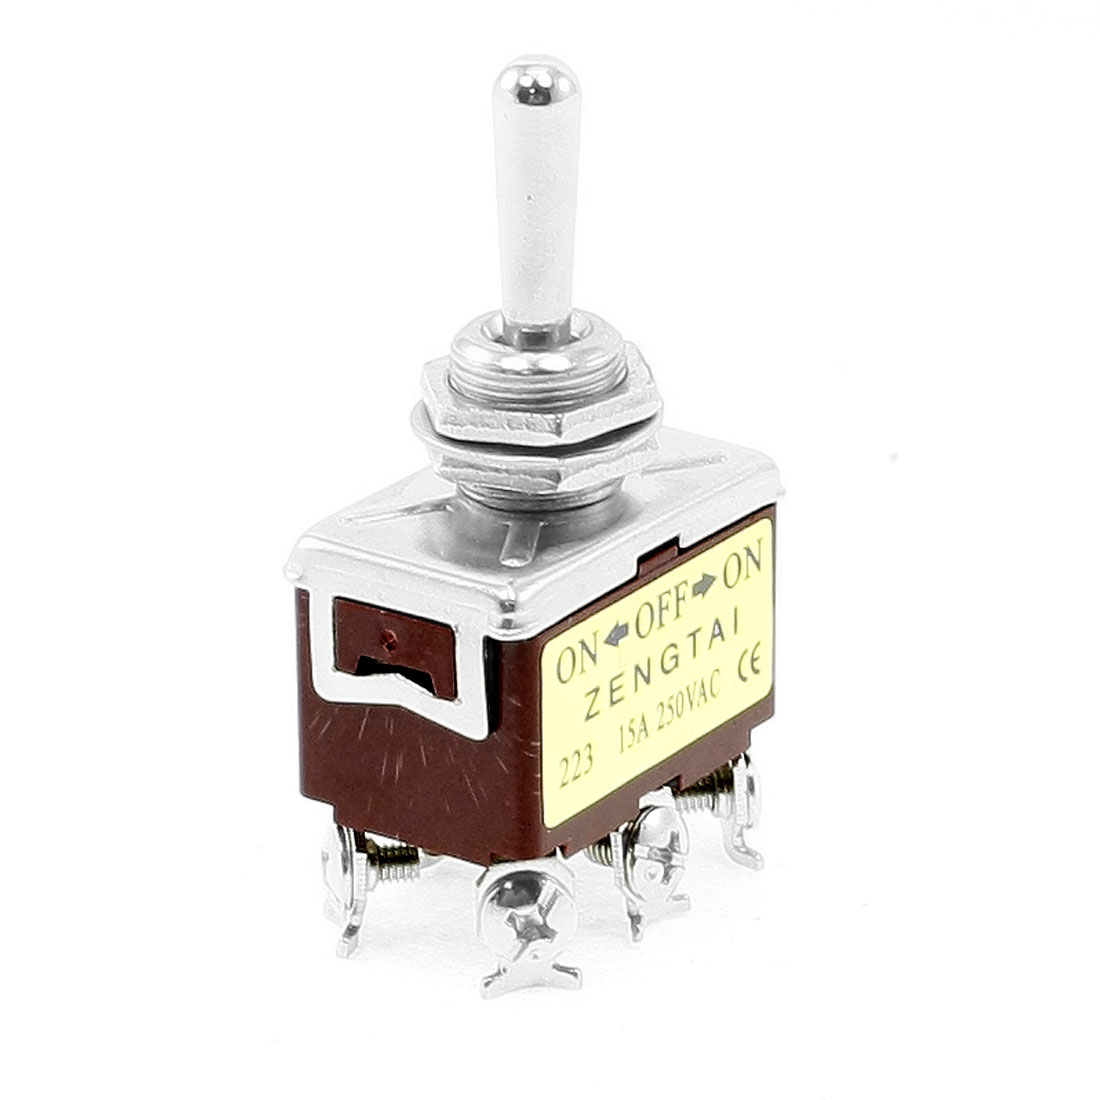 DPDT ON/OFF/ON 3 Position Panel Mounted Nonlocking Toggle Switch 15A 250VAC